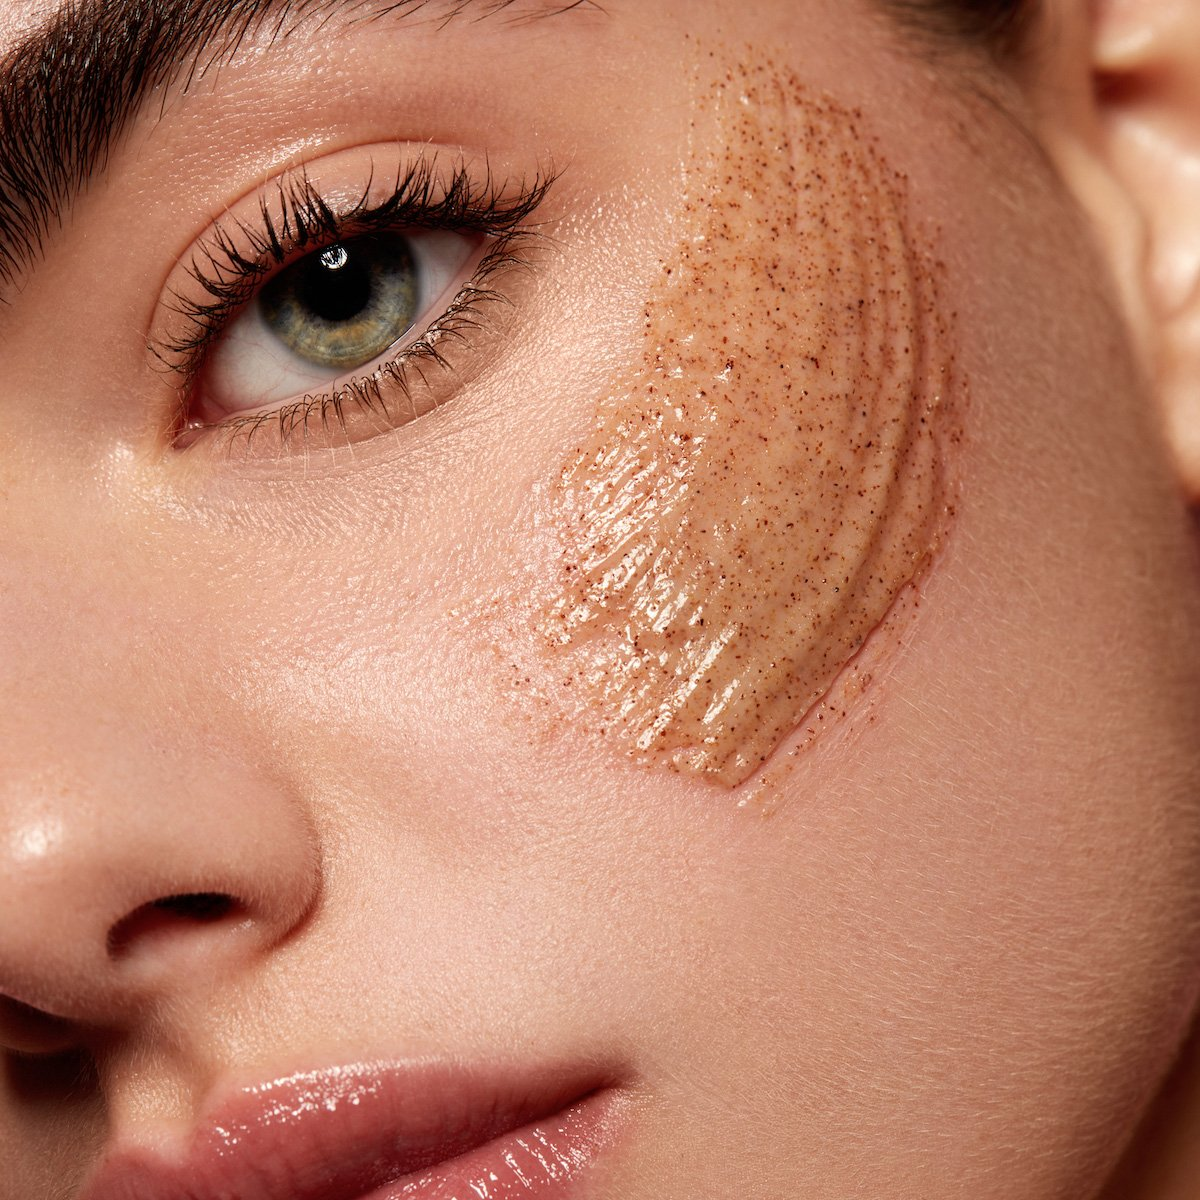 Model using Kylie Skin Walnut Face Scrub by Kylie Jenner